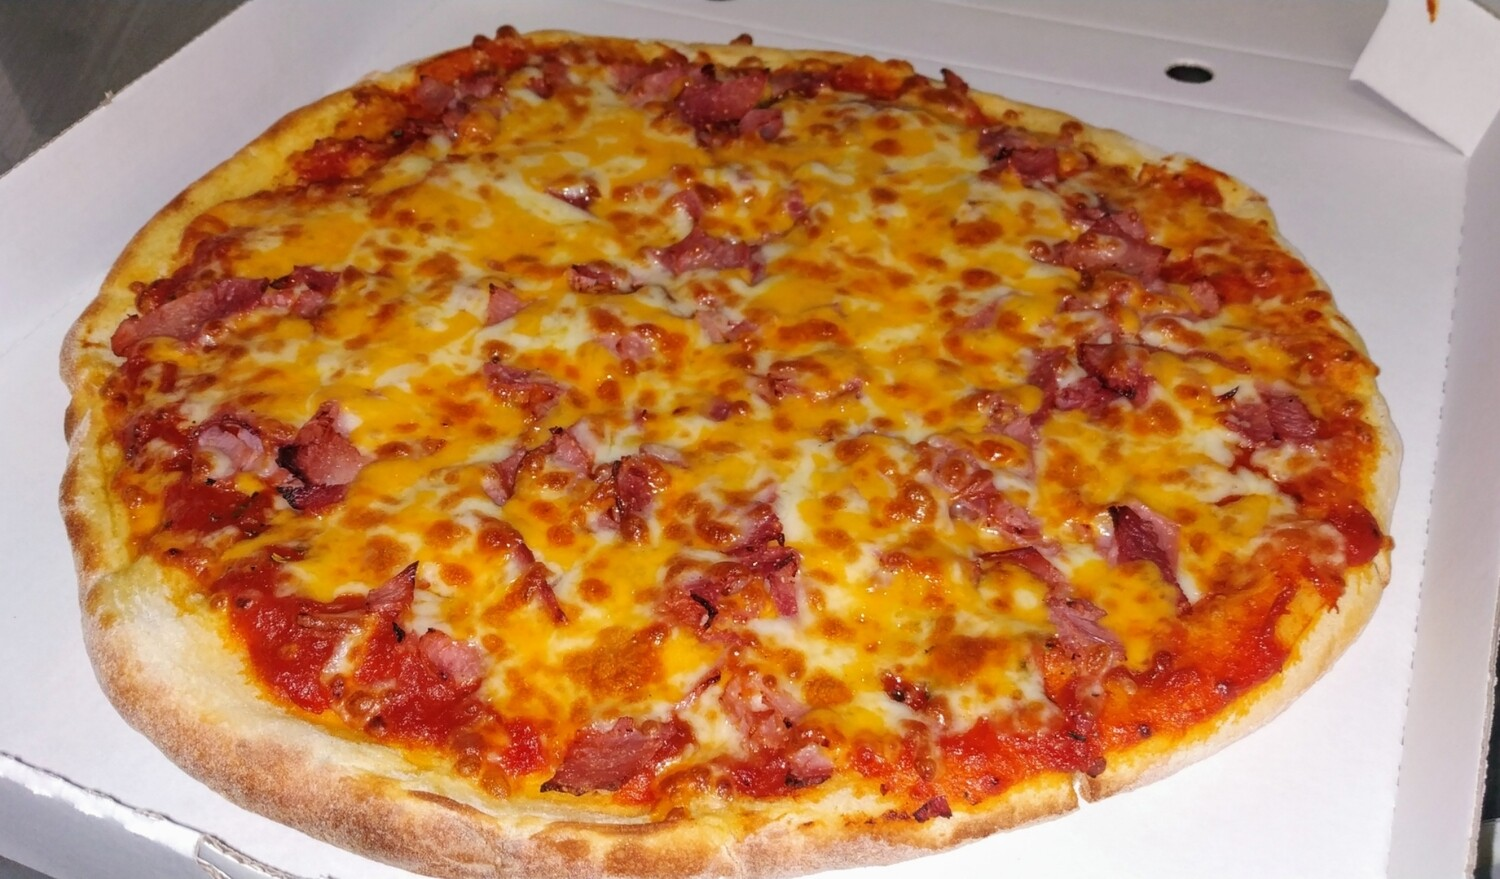 PIZZA YORK CHEESE JAMON Y QUESO